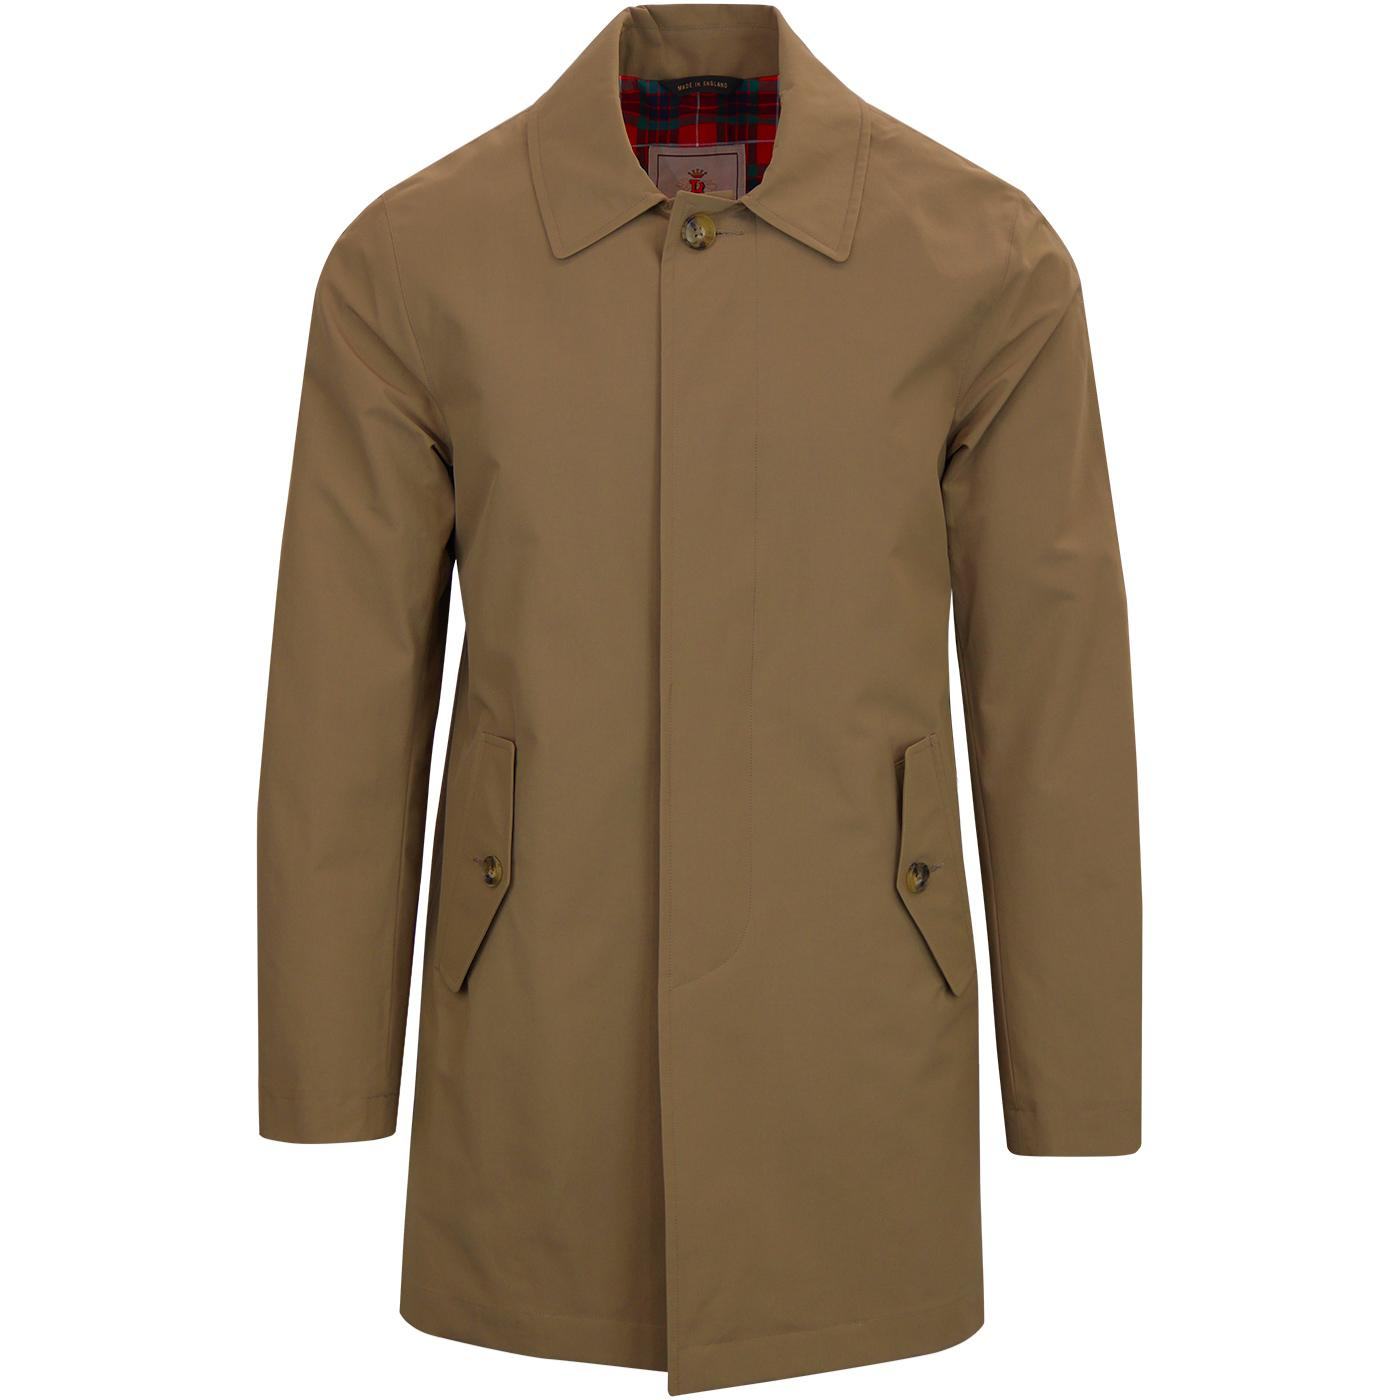 BARACUTA G10 Made in England Mac Raincoat (Tan)